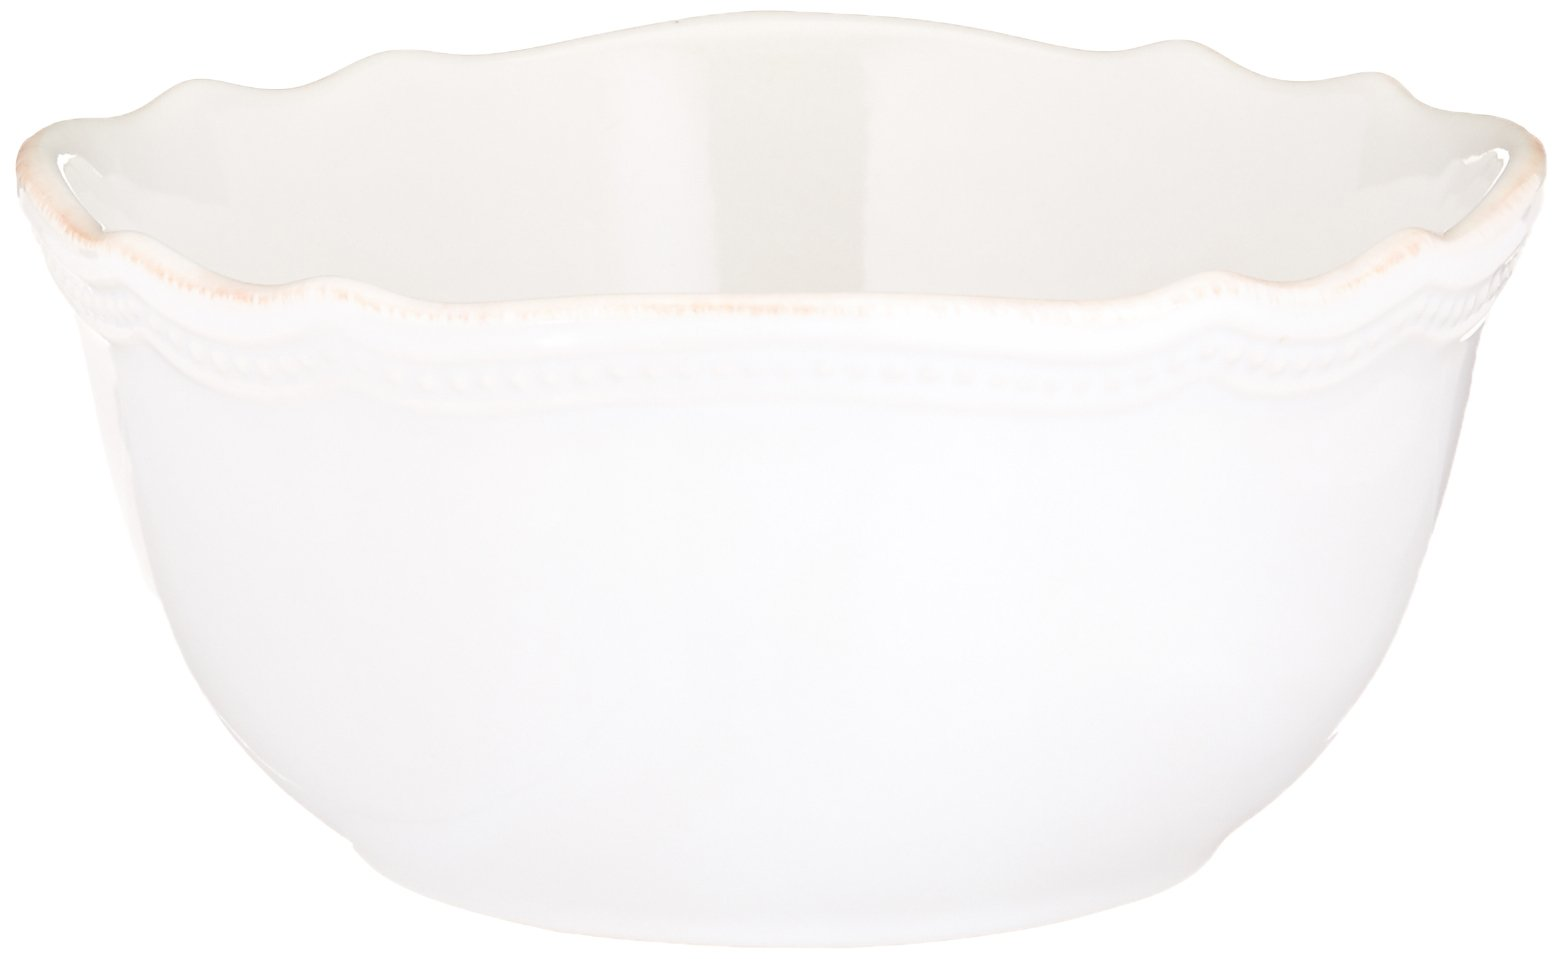 Lenox 4-Piece French Perle Bead Dinner Set, White by Lenox (Image #5)